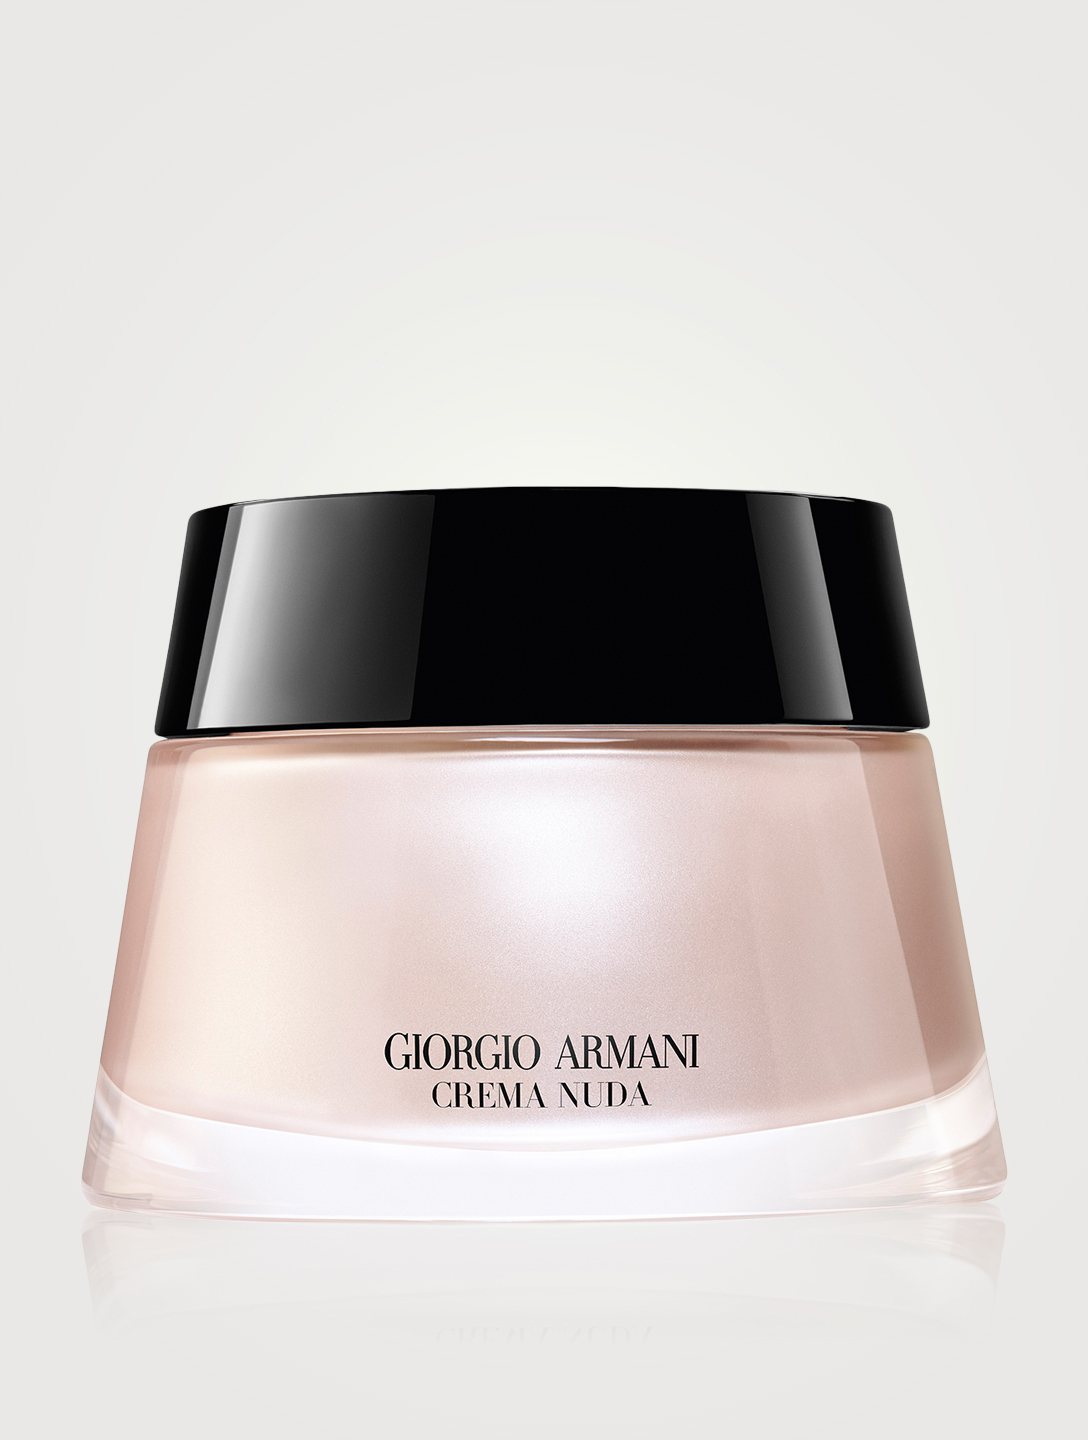 GIORGIO ARMANI Crema Nuda Beauty Neutral